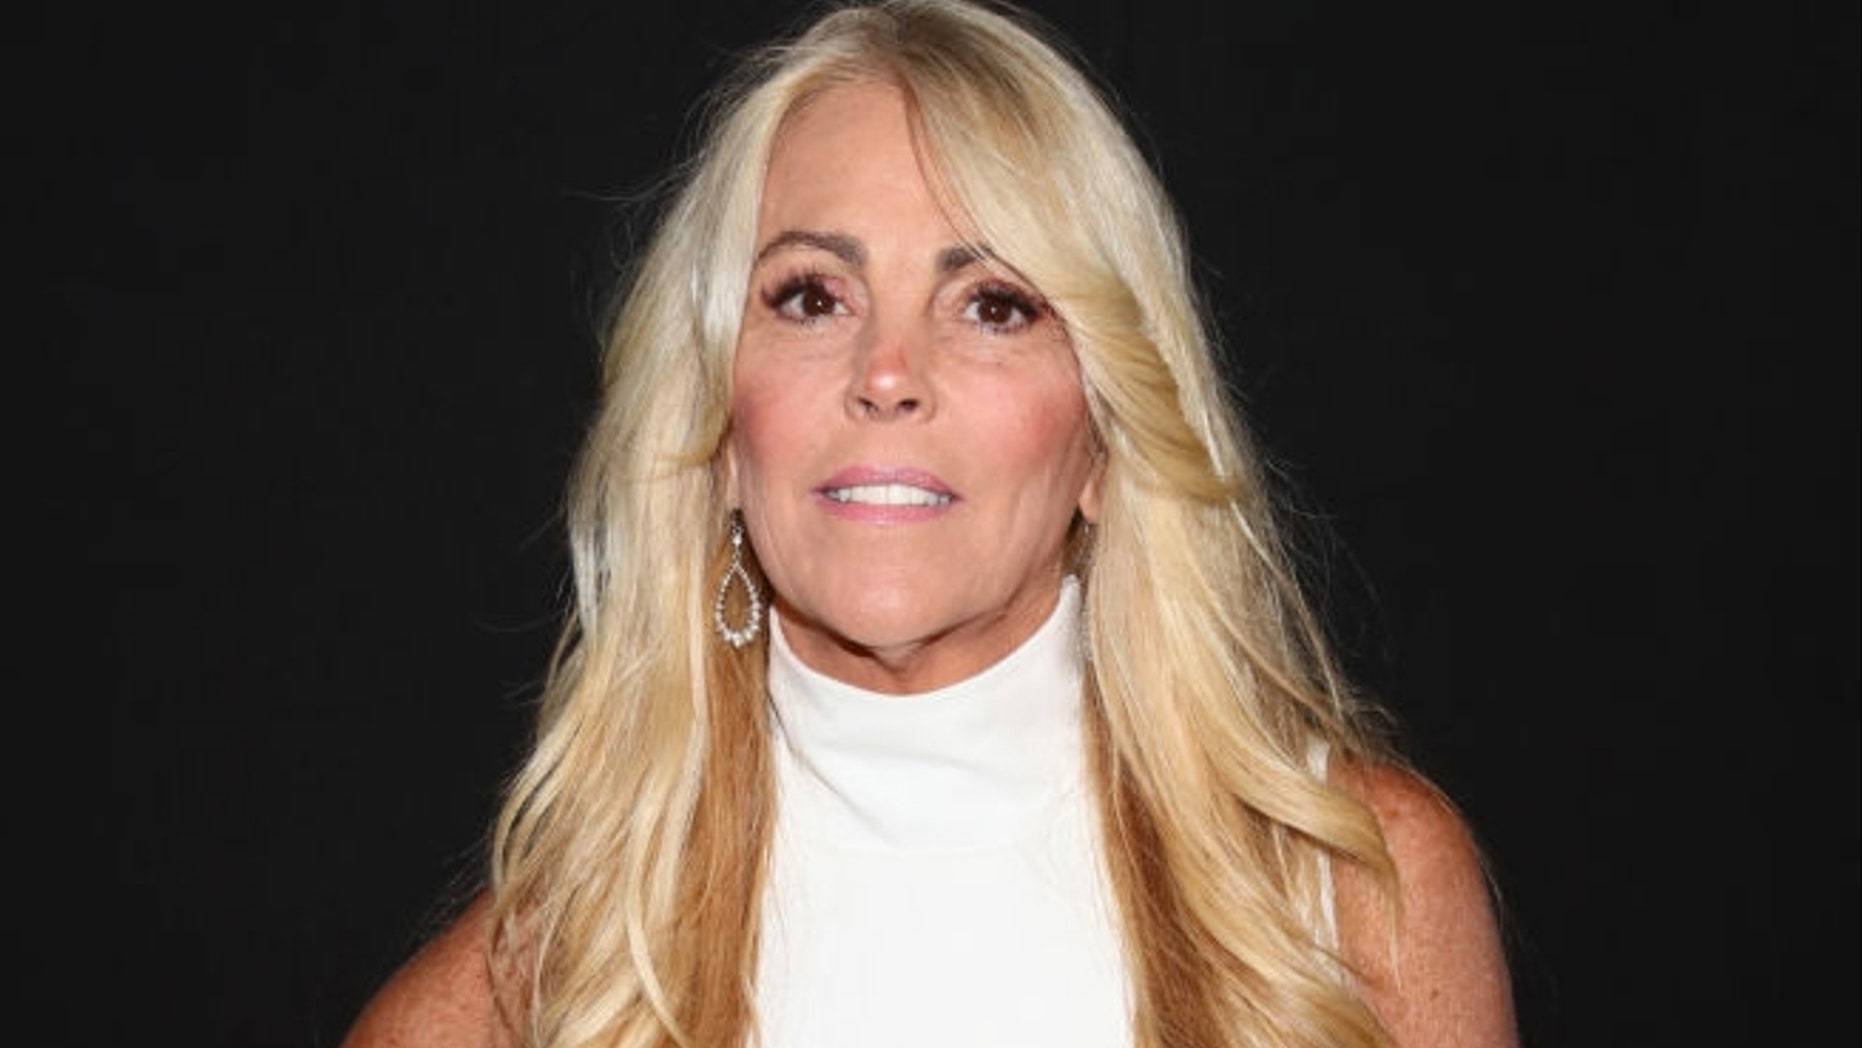 Dina Lohan, pictured here on Sept. 7, 2018, reportedly filed for bankruptcy with over $1.5 million in debt, according to TMZ.